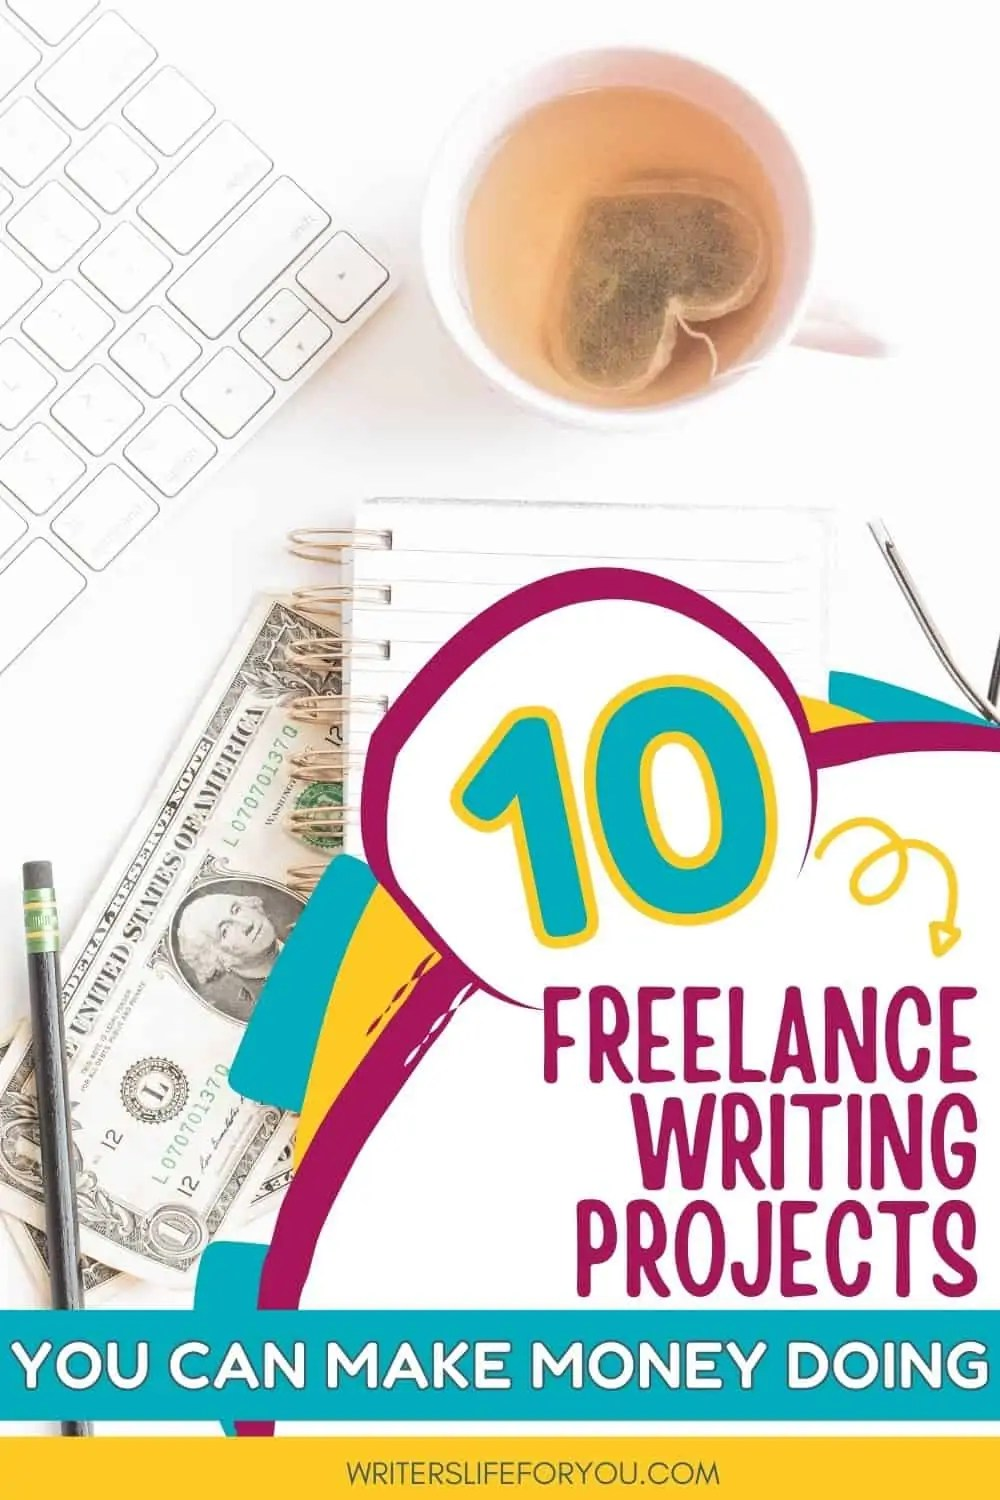 10 Types of the Best Professional Freelance Writing Projects You Can Easily Make Money Doing